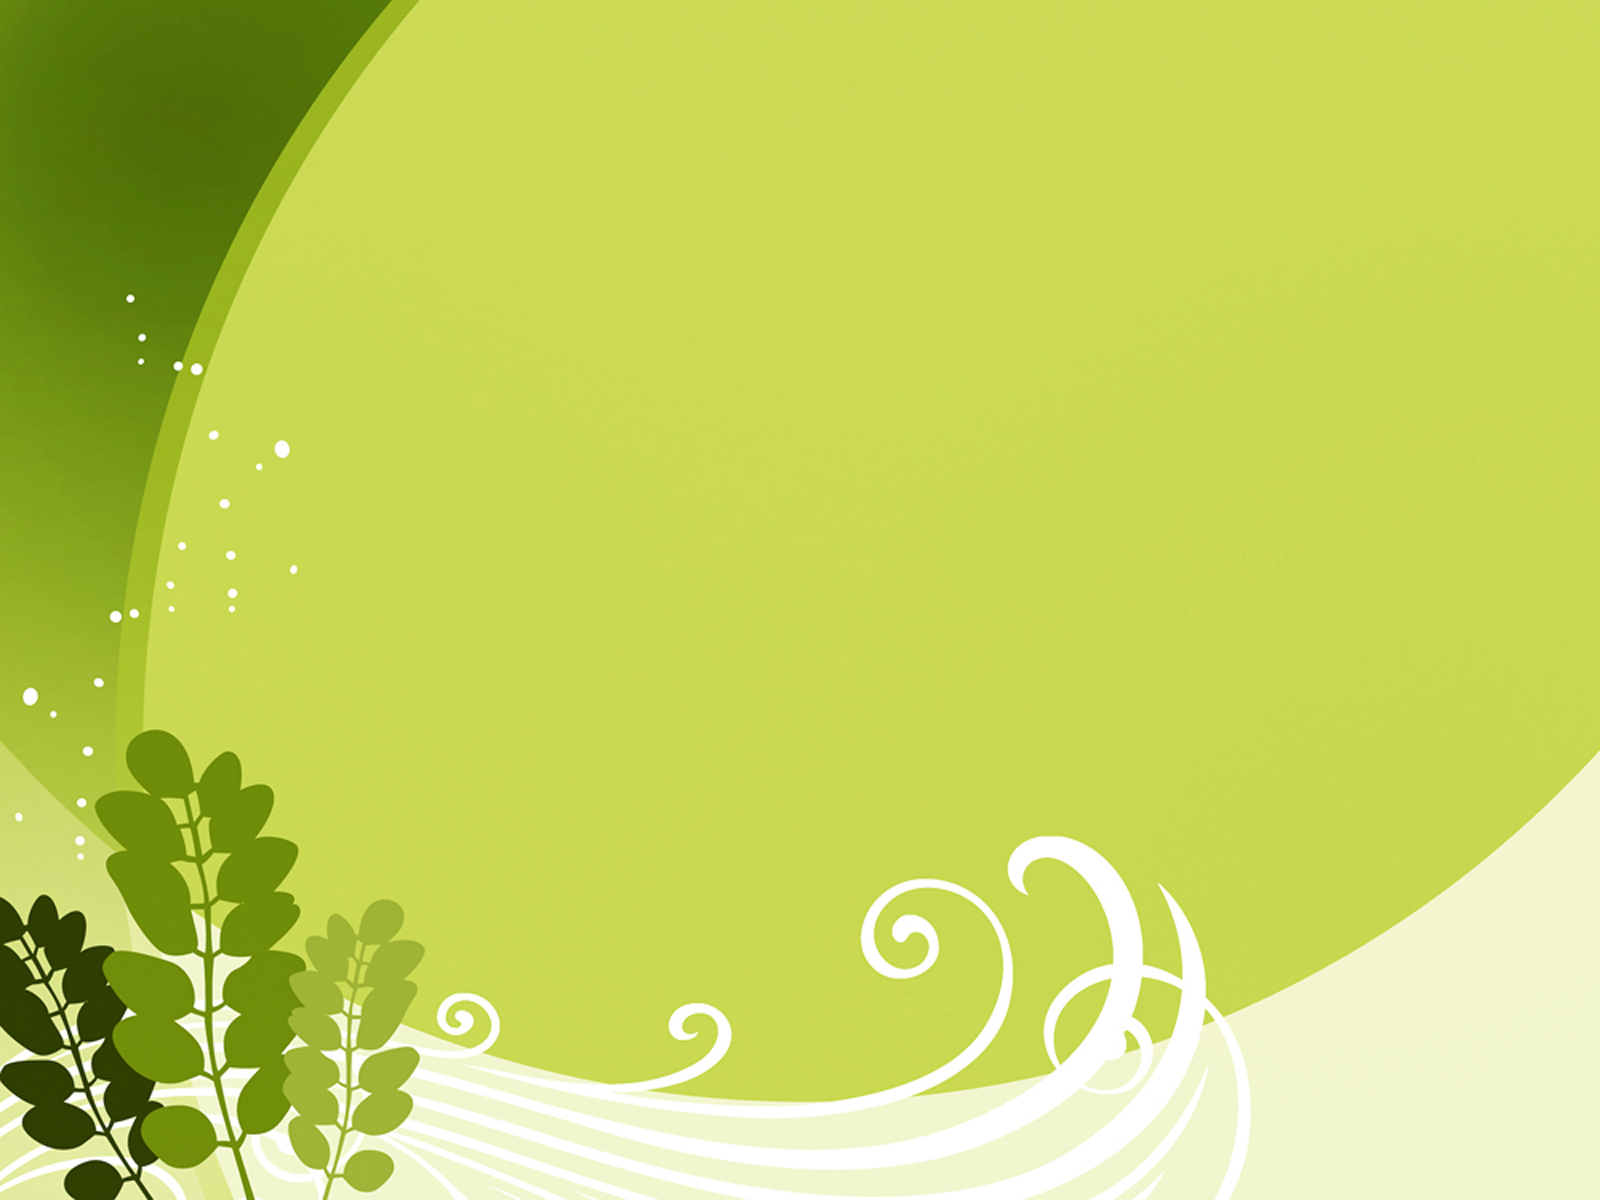 Green leaf template PPT Backgrounds